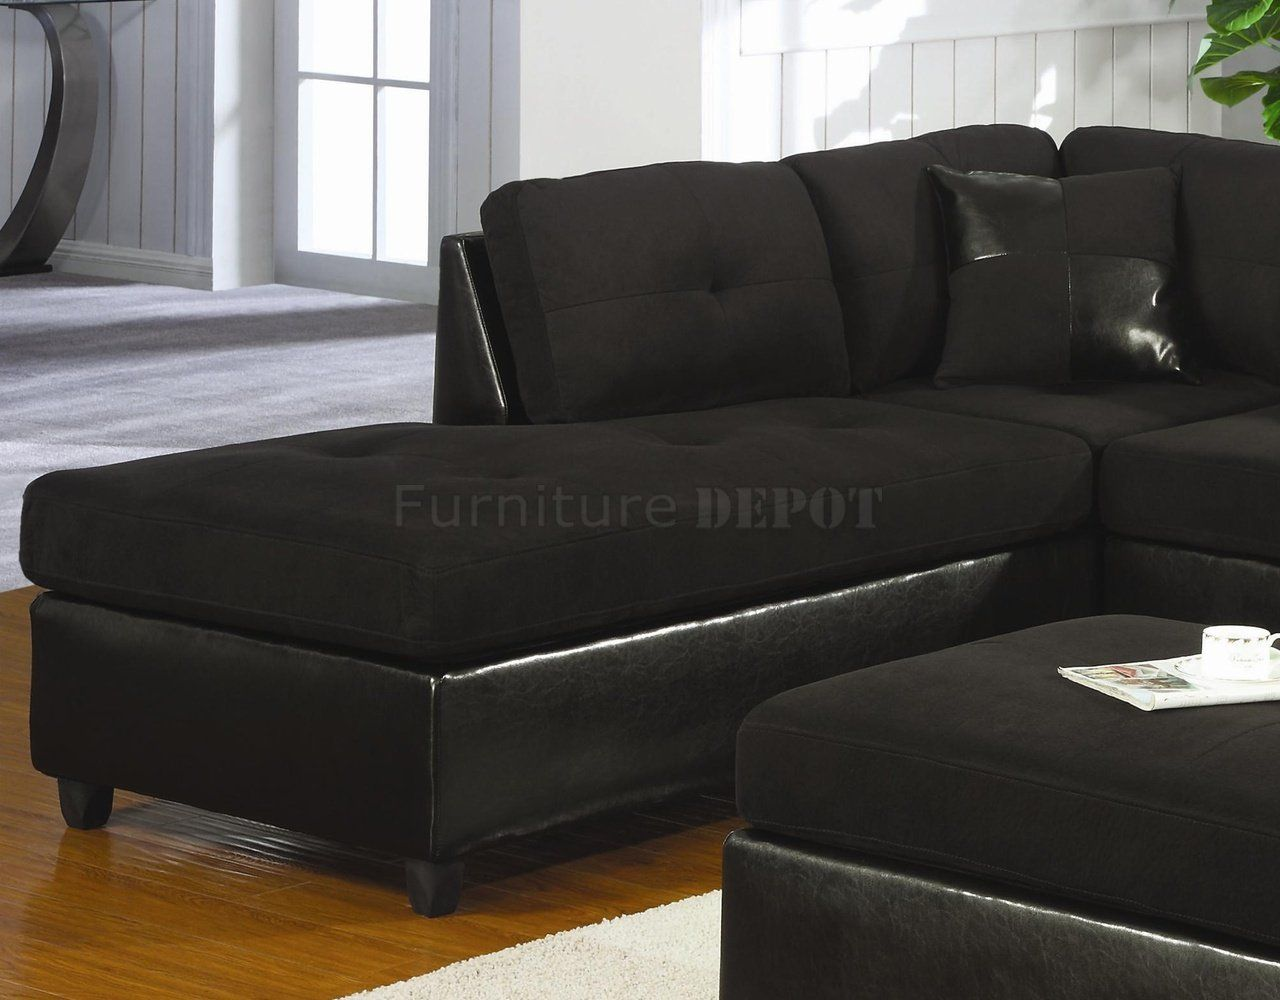 Beautiful Black Microsuede Couch | Microfiber U0026 Faux Leather Contemporary Sectional  Sofa 500735 Black